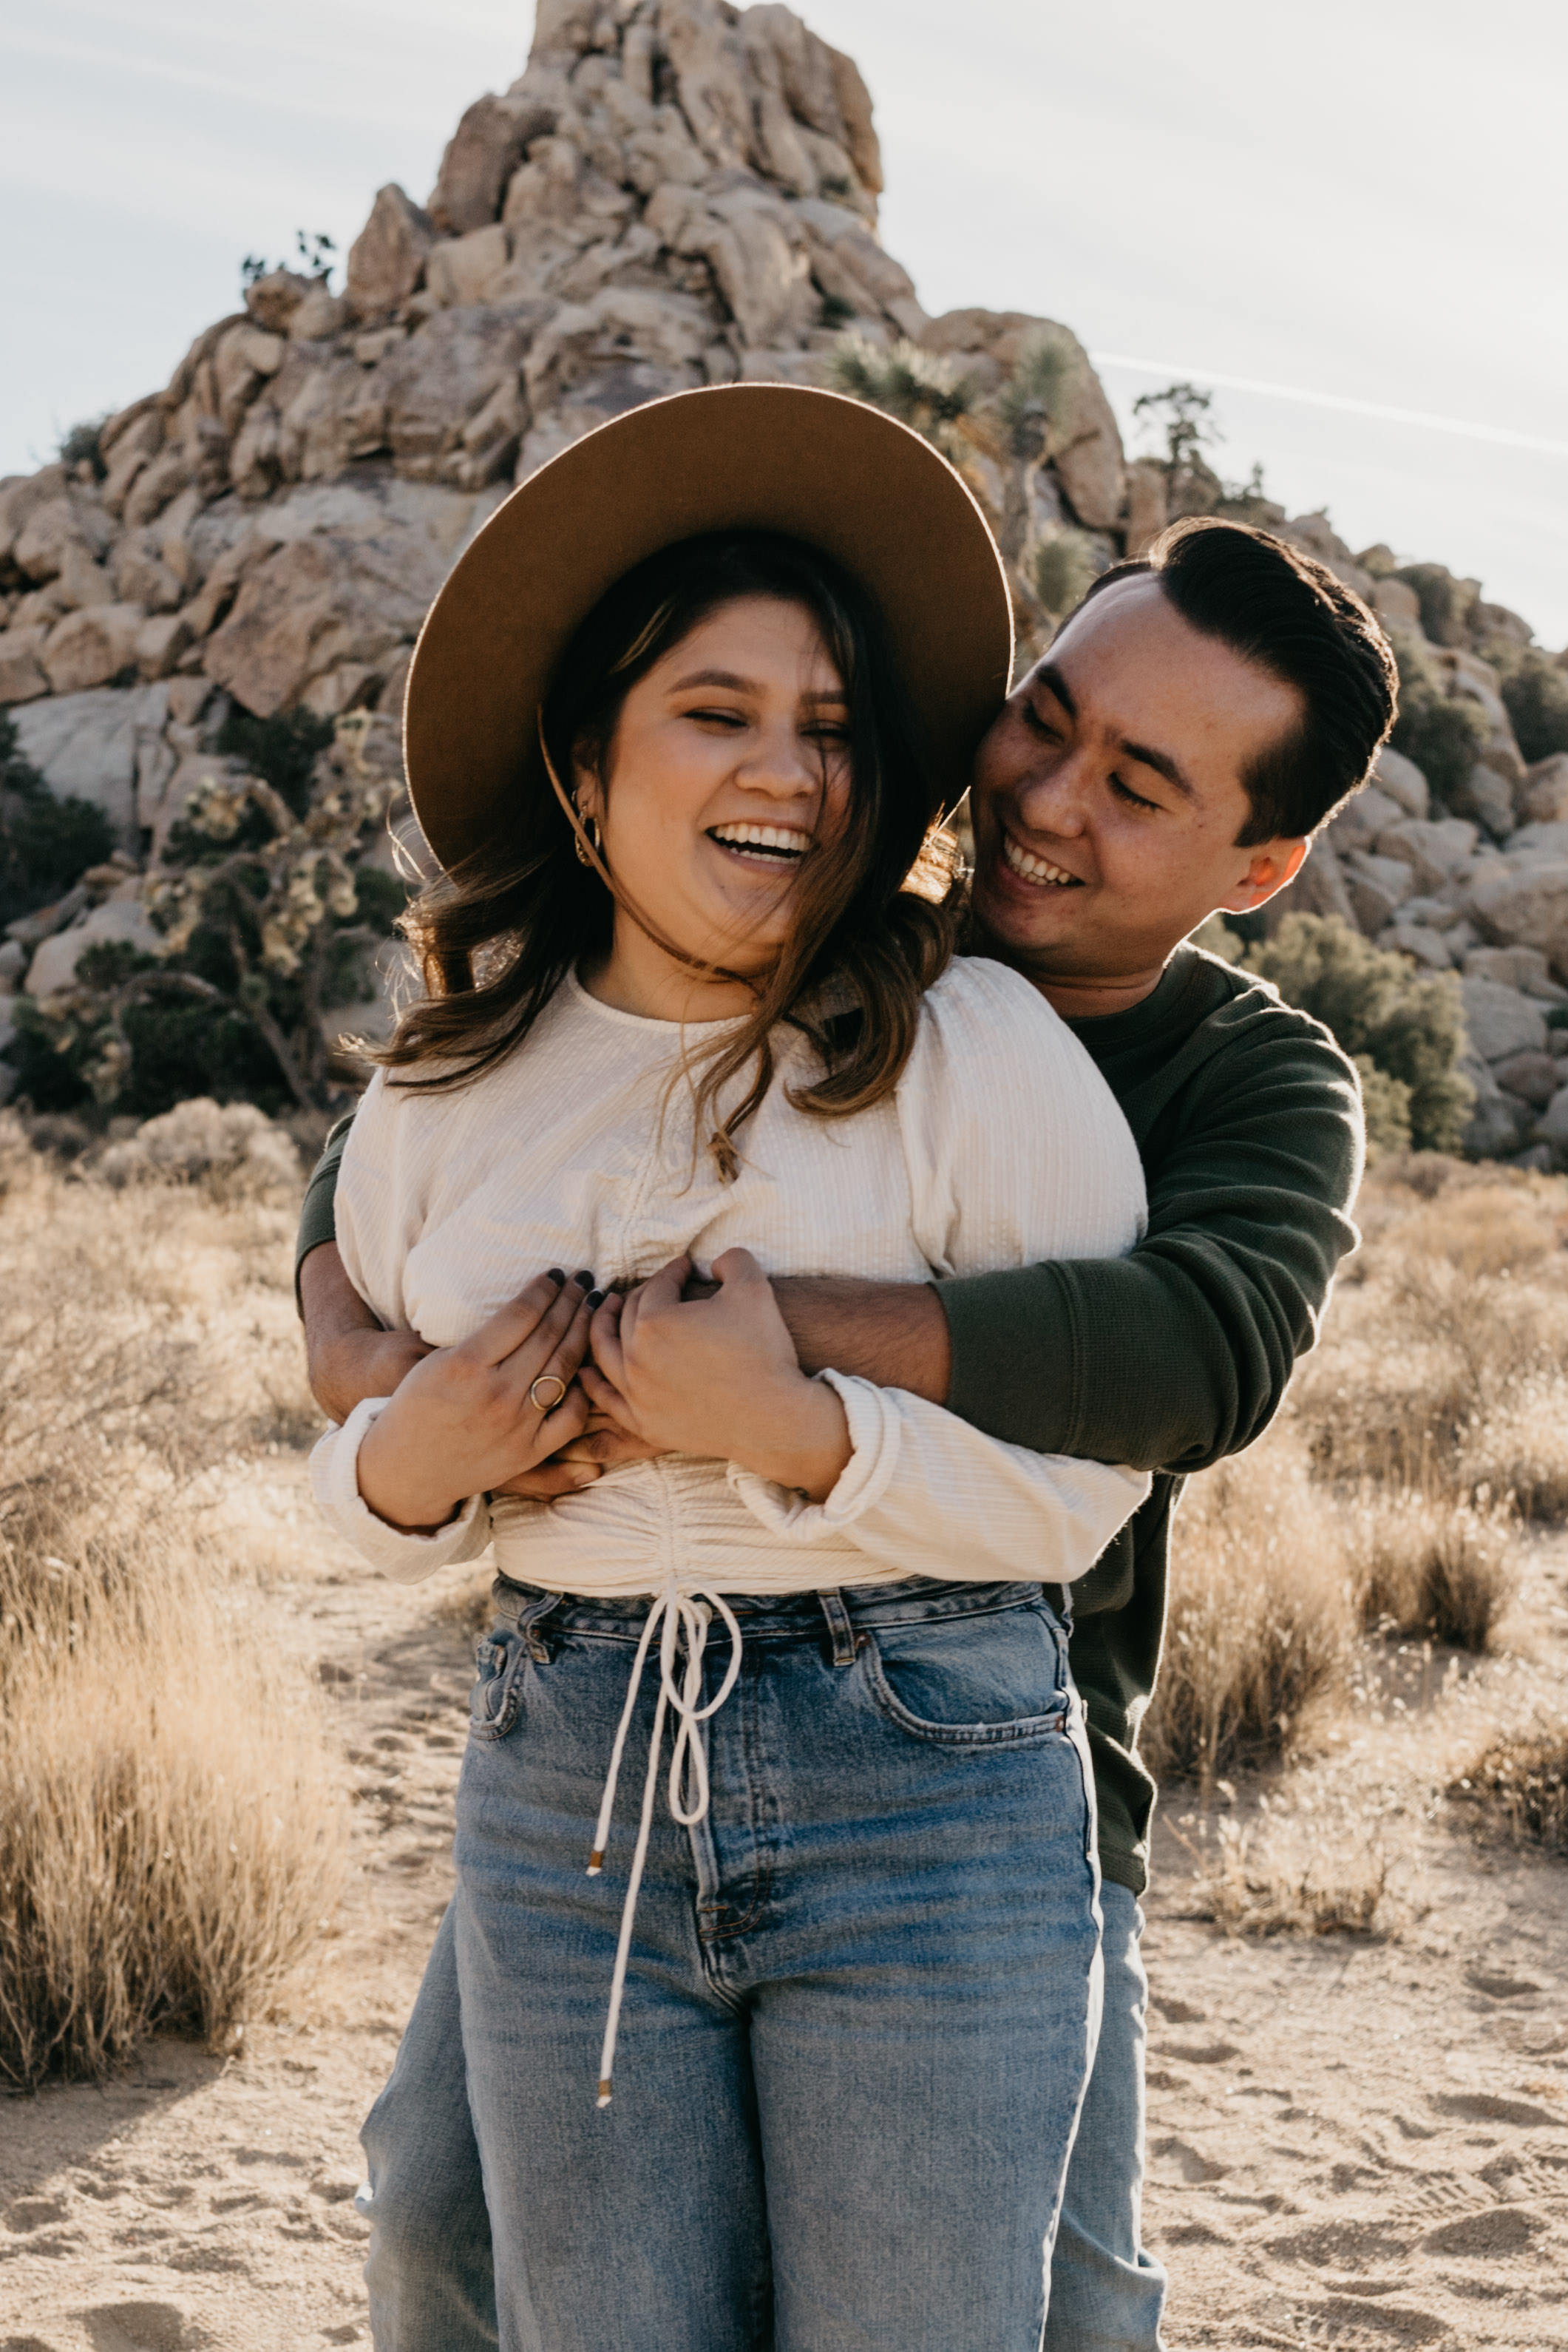 Joshua Tree Couple Photoshoot, image by Fatima Elreda Photo